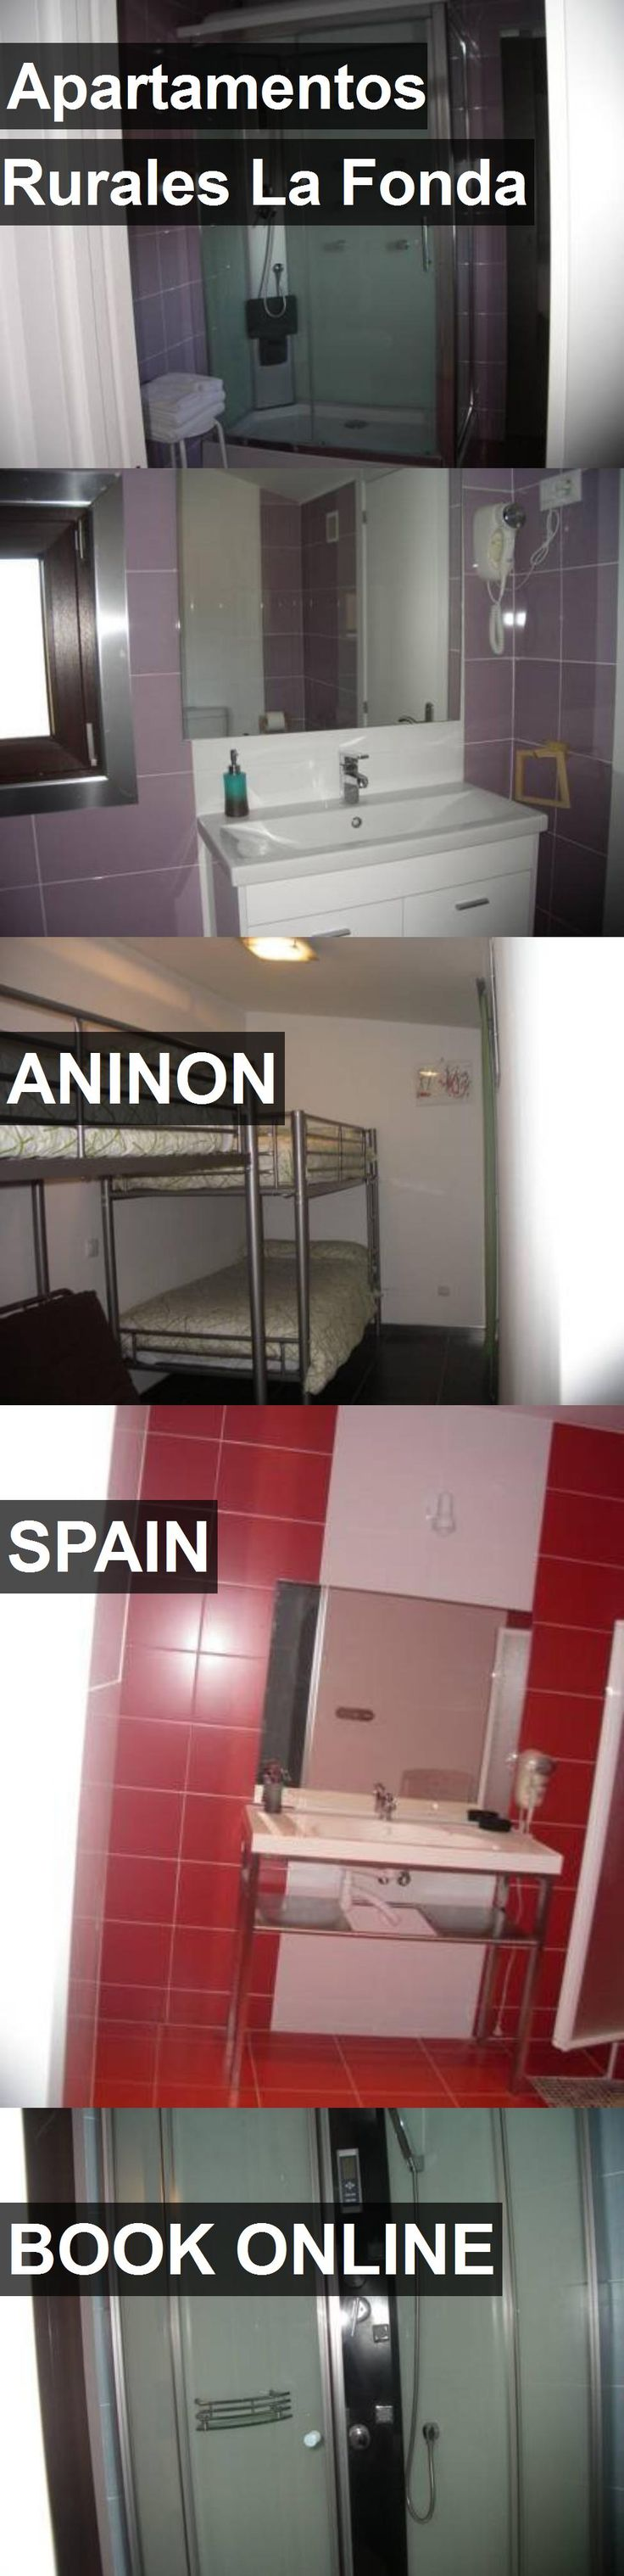 Hotel Apartamentos Rurales La Fonda in Aninon, Spain. For more information, photos, reviews and best prices please follow the link. #Spain #Aninon #travel #vacation #hotel